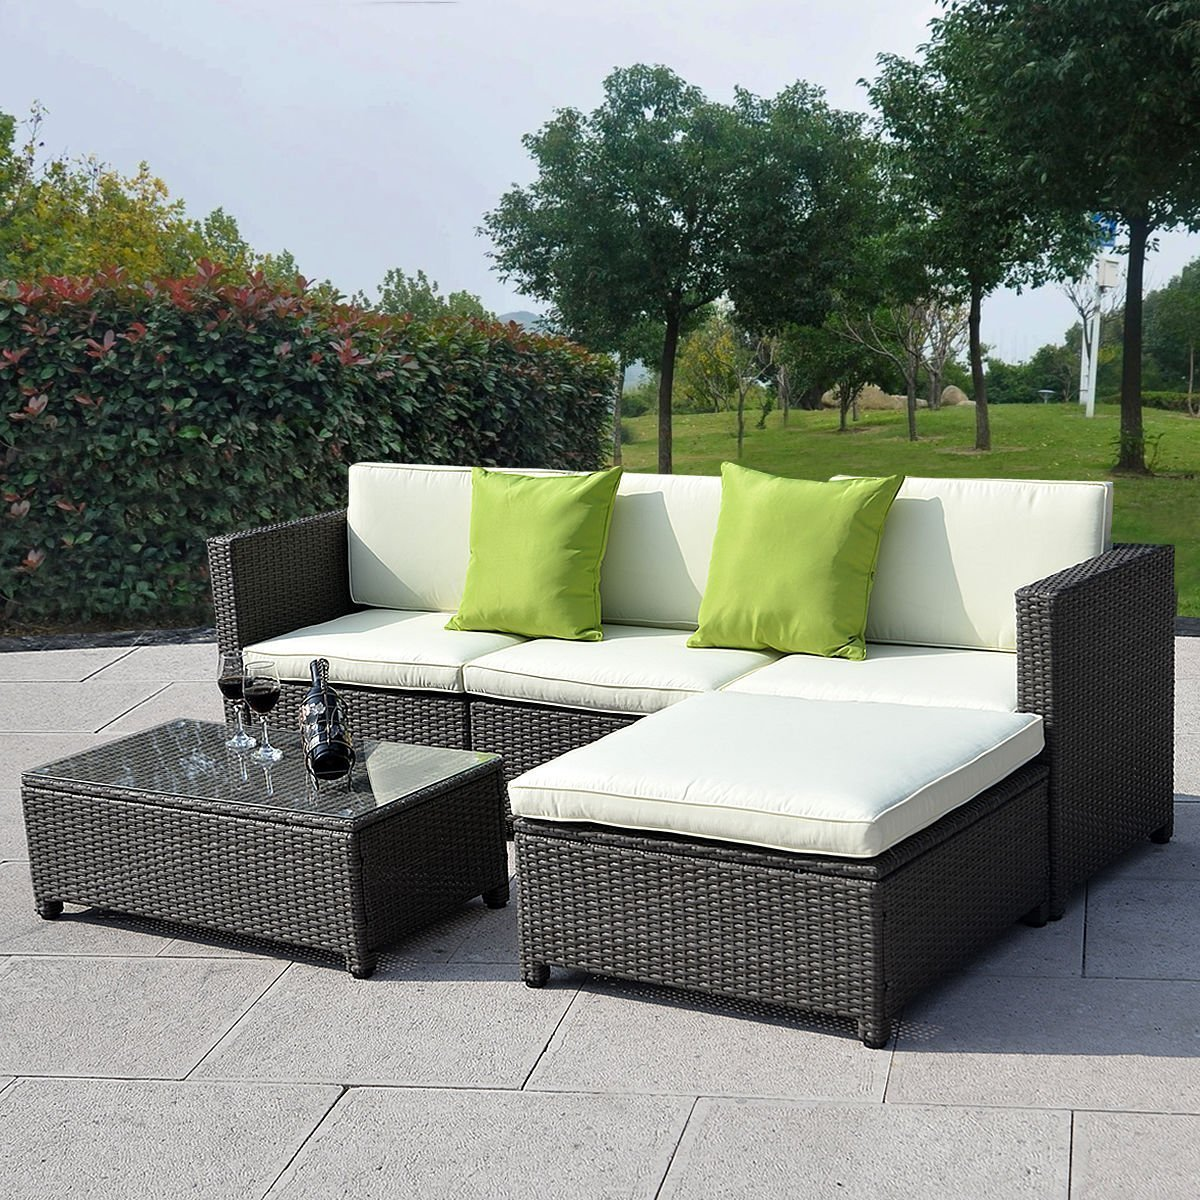 Amazoncom Goplus Outdoor Patio 5PC Furniture Sectional PE